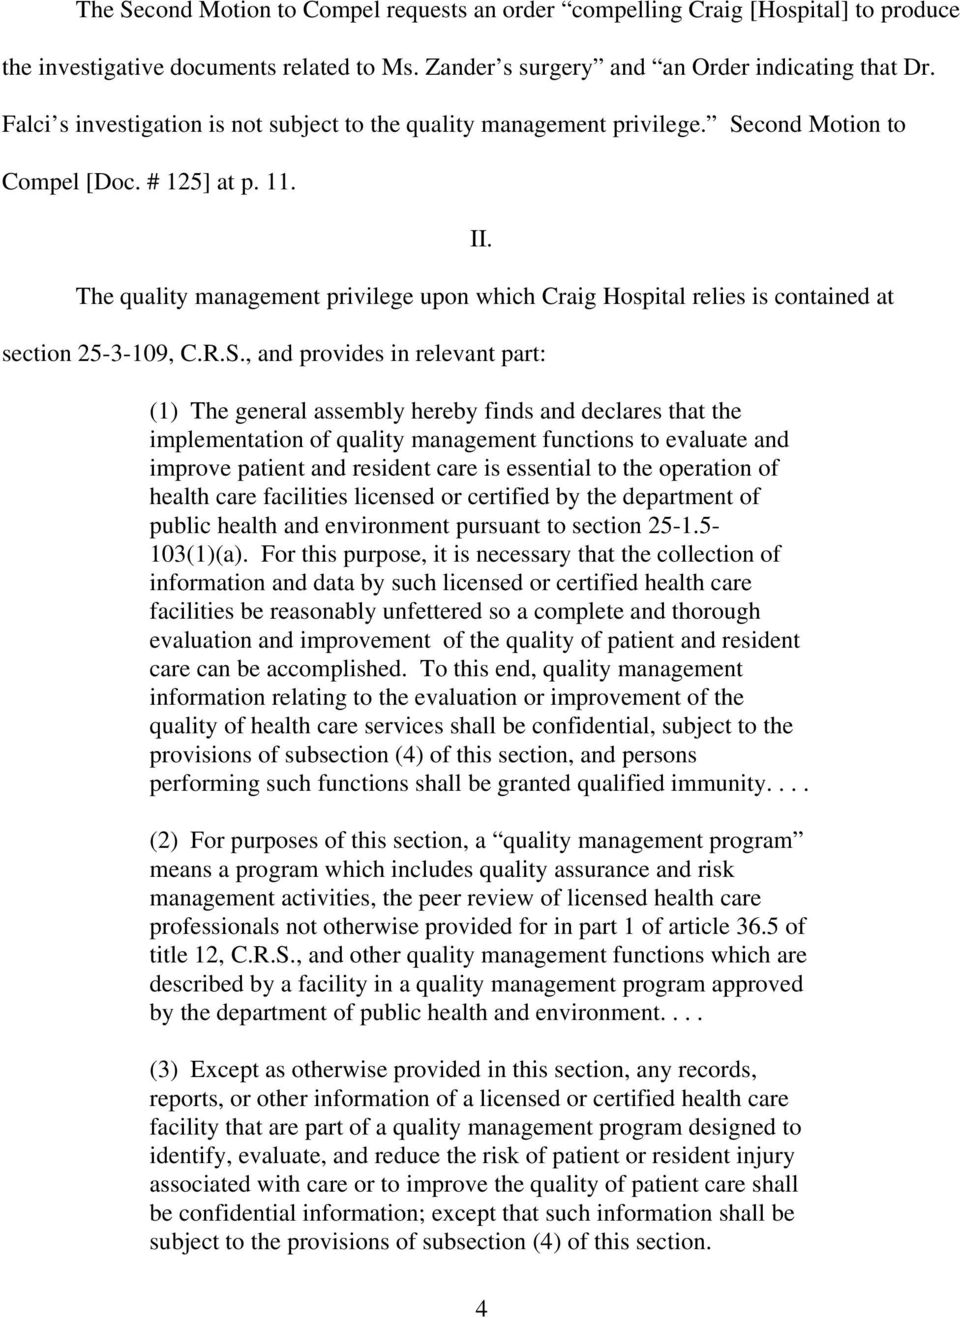 The quality management privilege upon which Craig Hospital relies is contained at section 25-3-109, C.R.S.